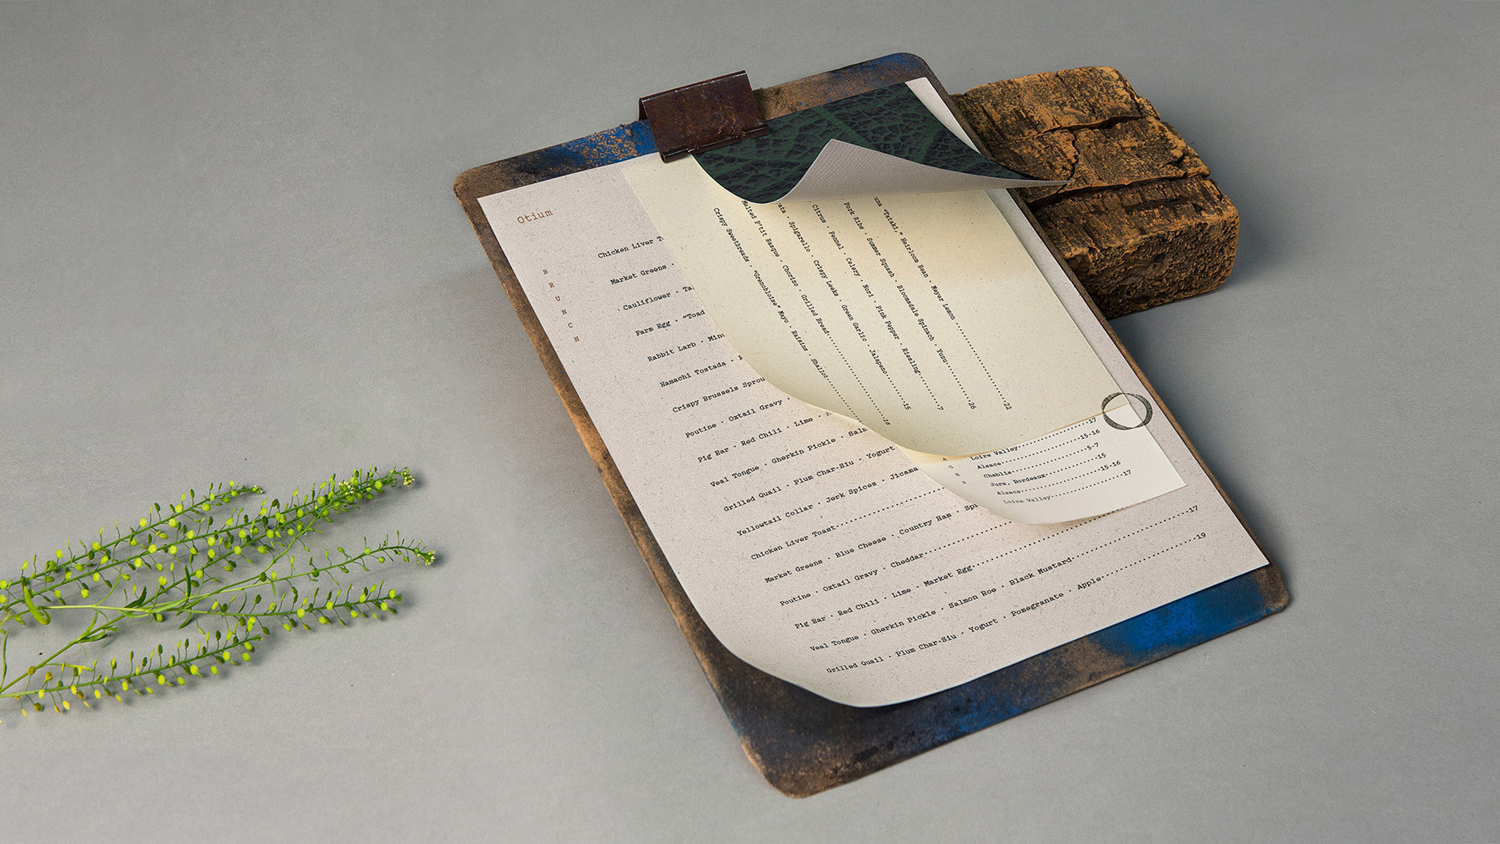 Brand identity and menu designed by Sagmeister & Walsh for contemporary restaurant Otium